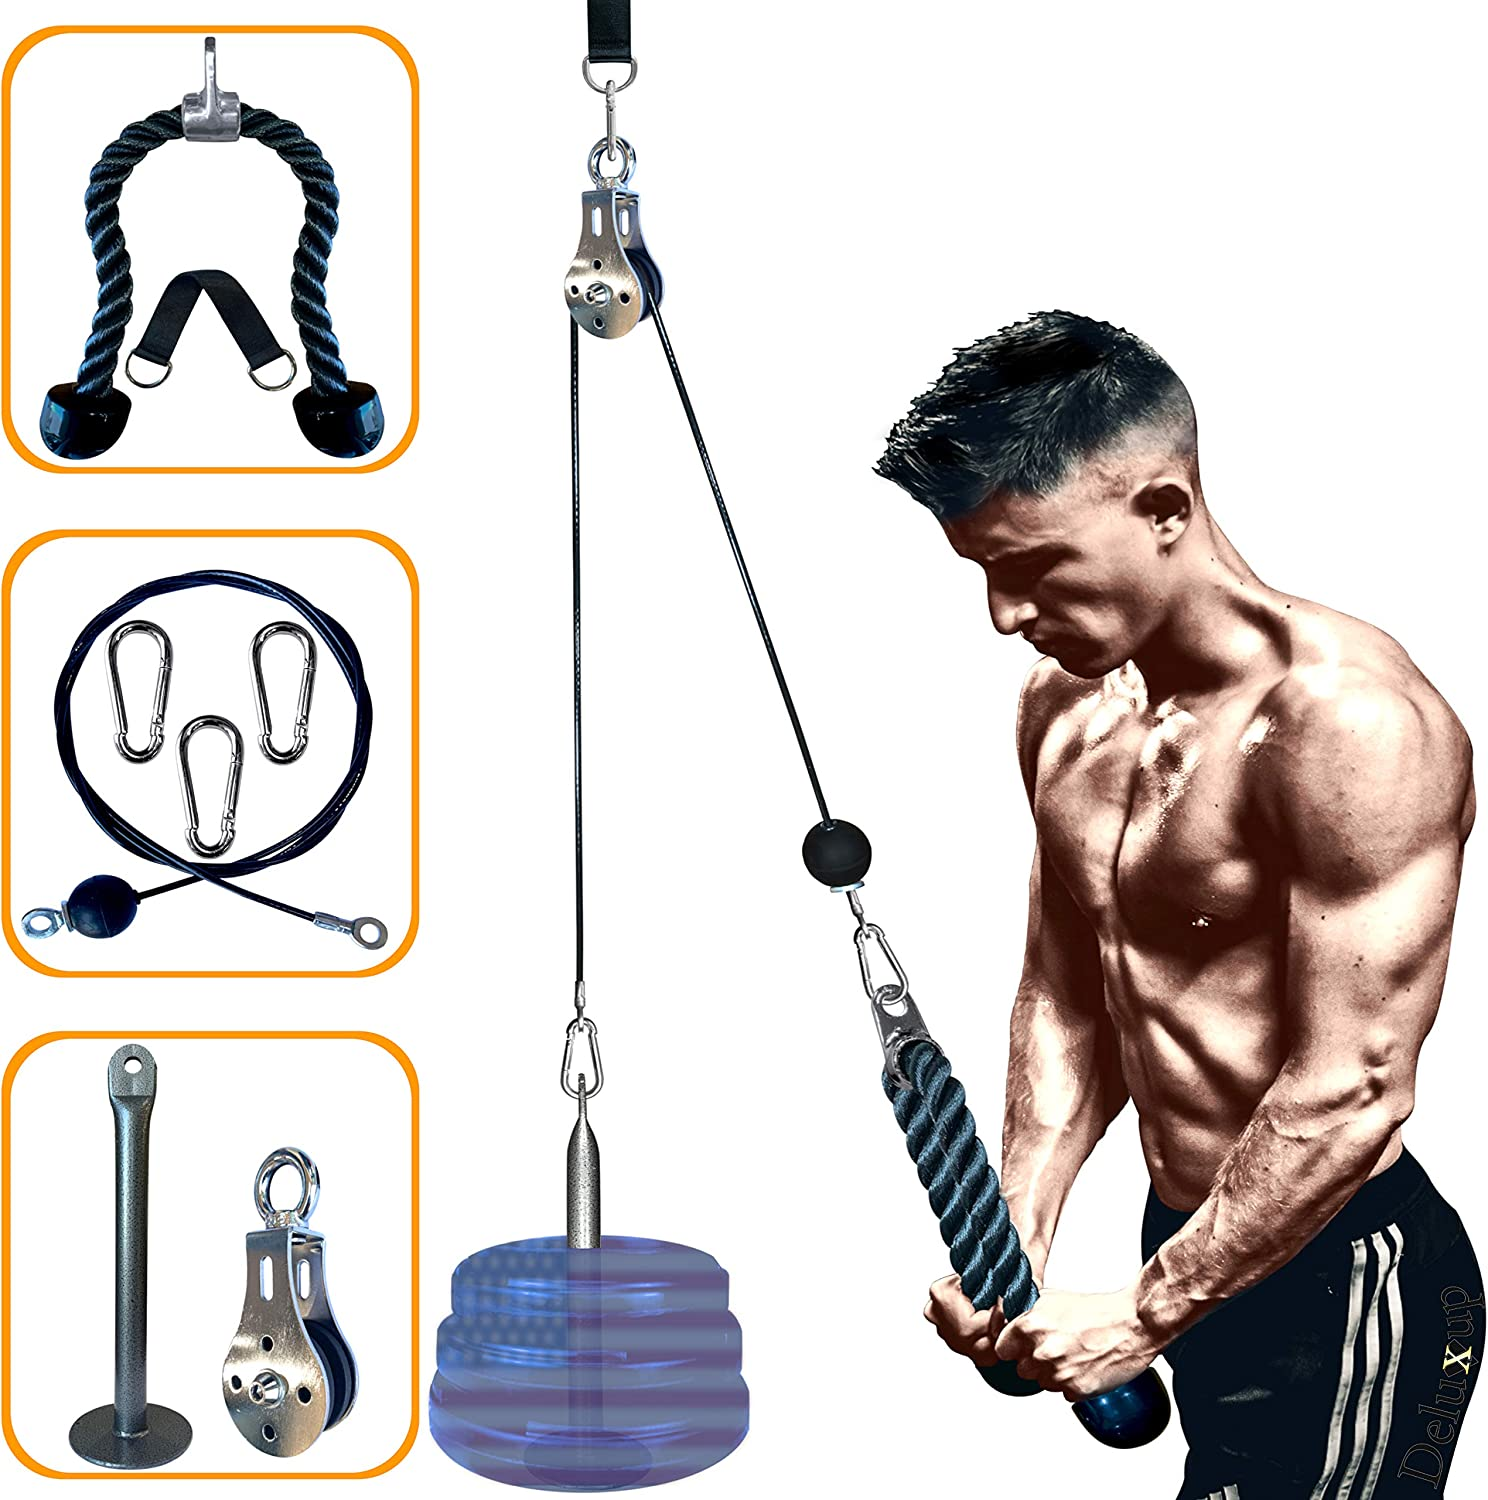 DELUXUP LAT Pull Down Machine, Great Weight Pulley Cable System for Home Gym & Fitness Workout with tricep Pull Down Rope Included! Pulldown for Exercise Your LAT,Tricep & Biceps, Easy Set Up and Use